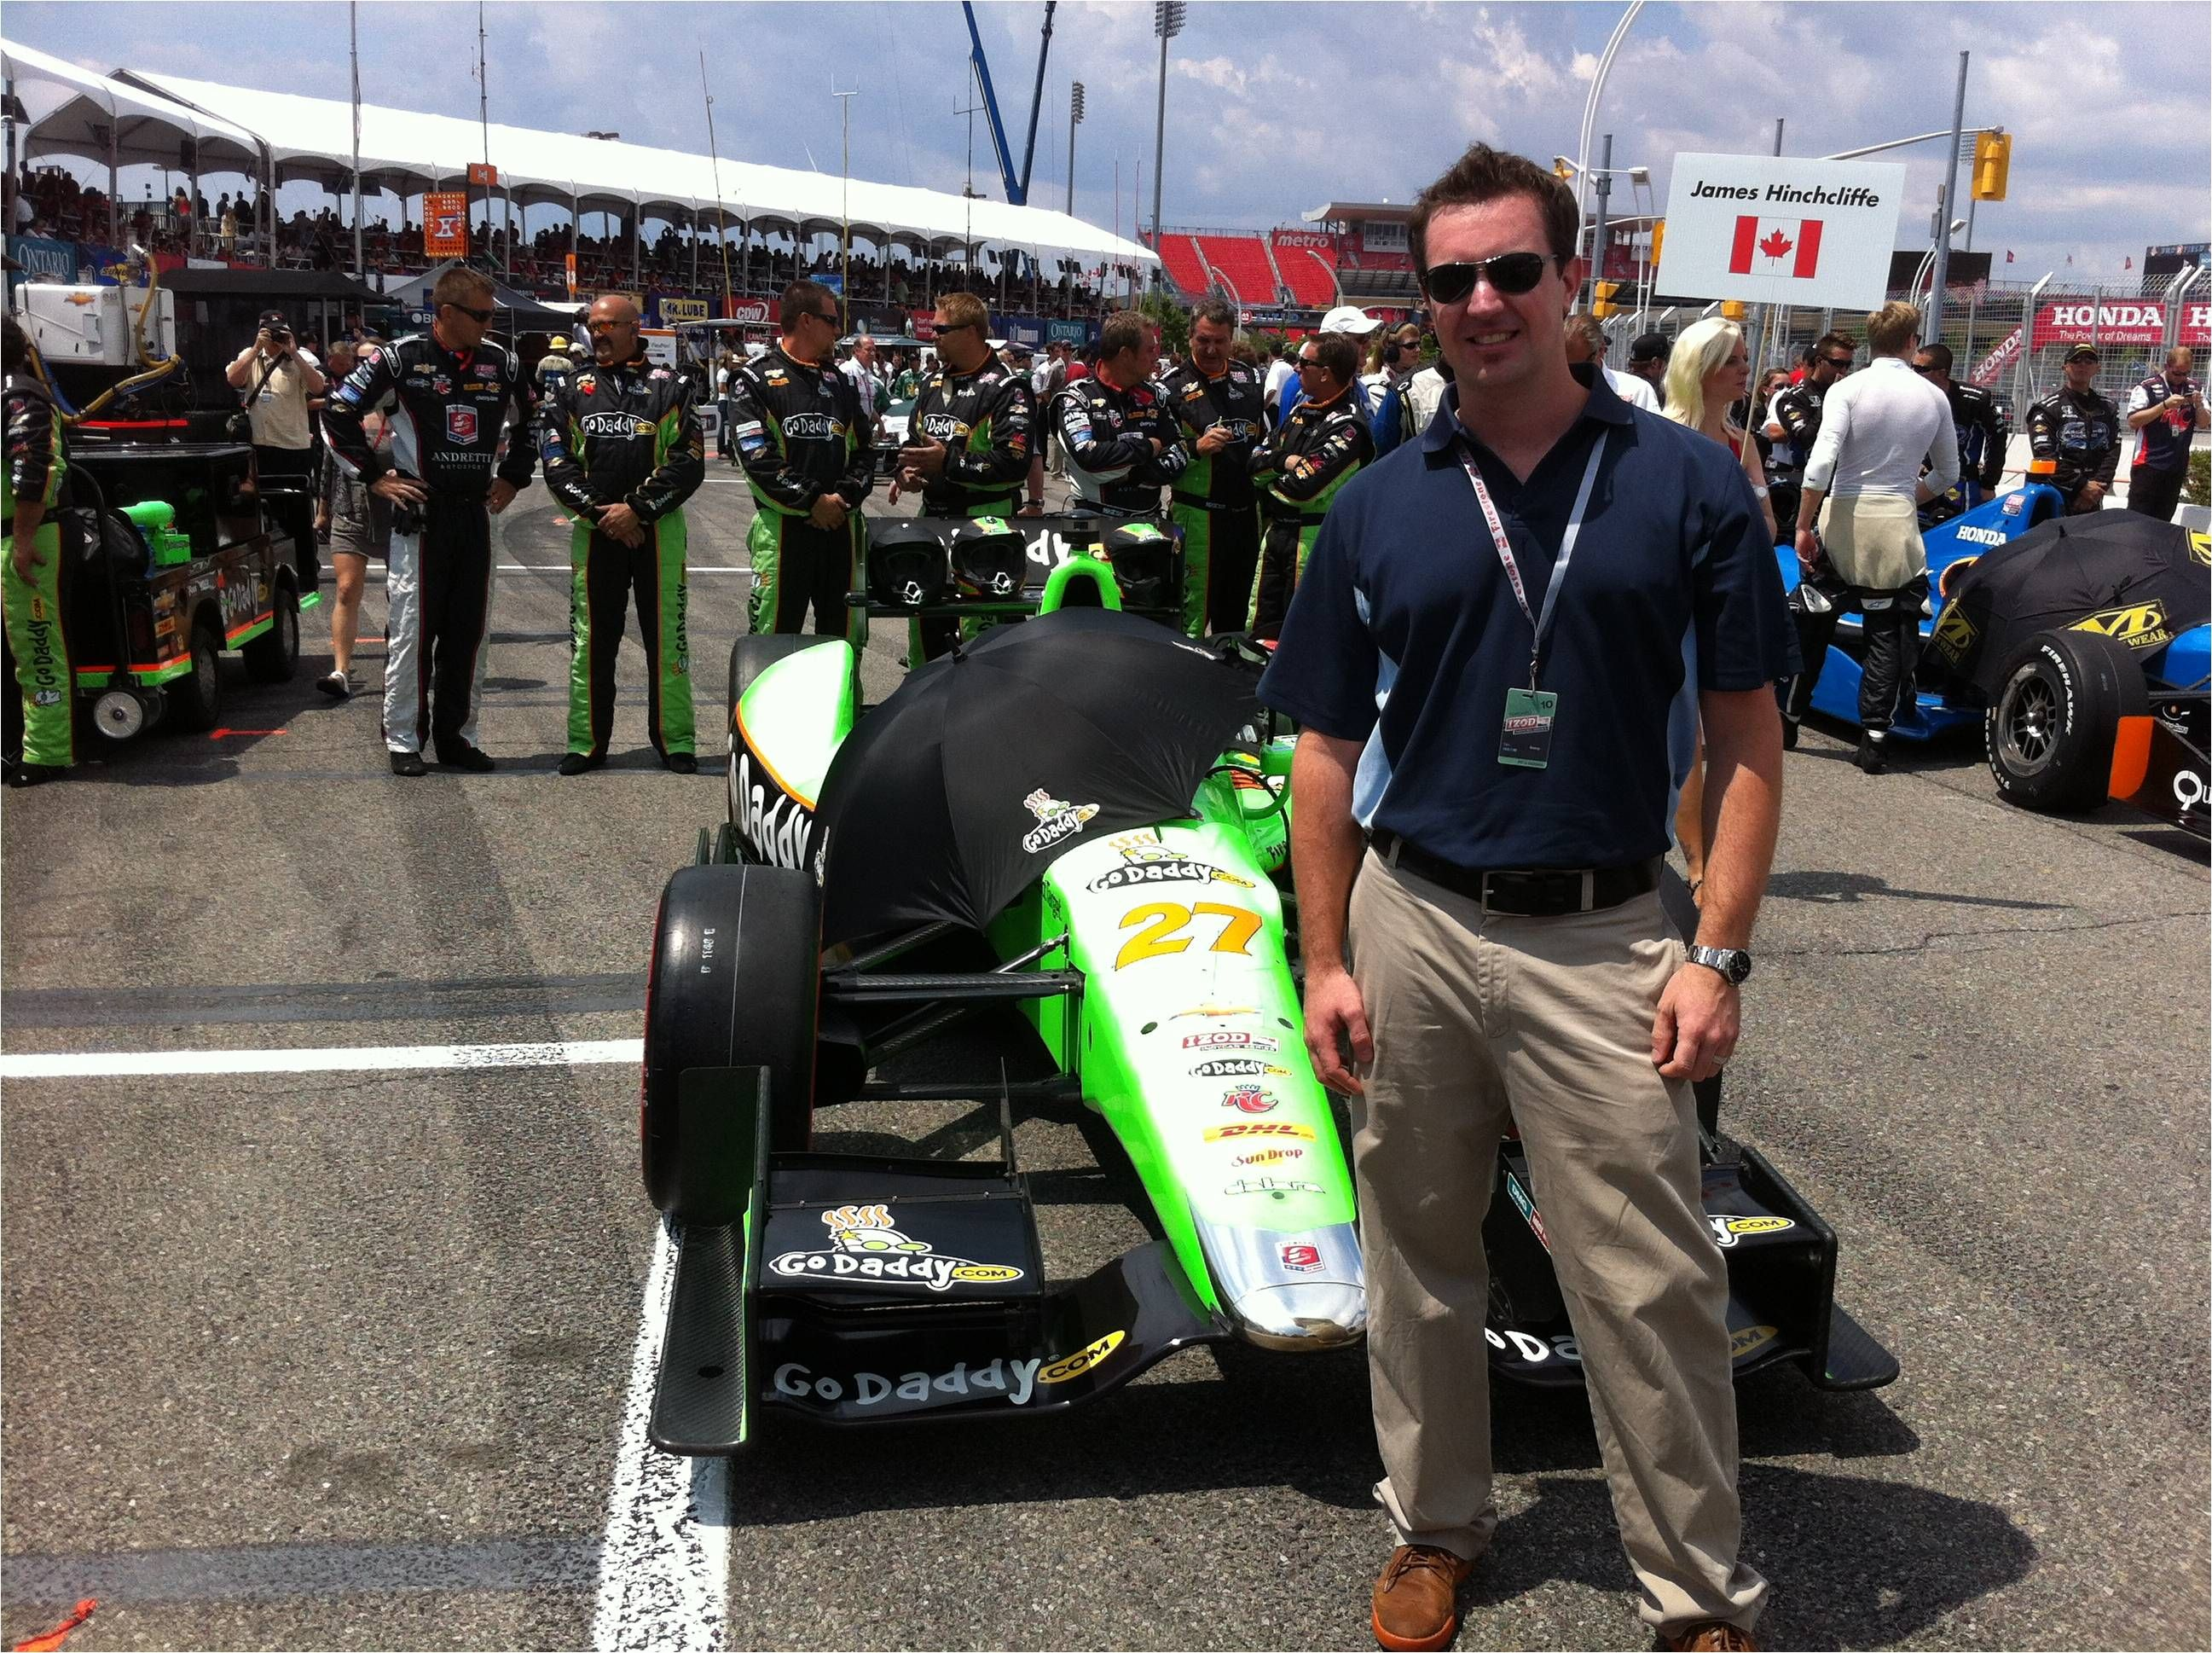 Tim supports local driver James Hinchcliffe at the 2012 Toronto Indy - best of luck next season!